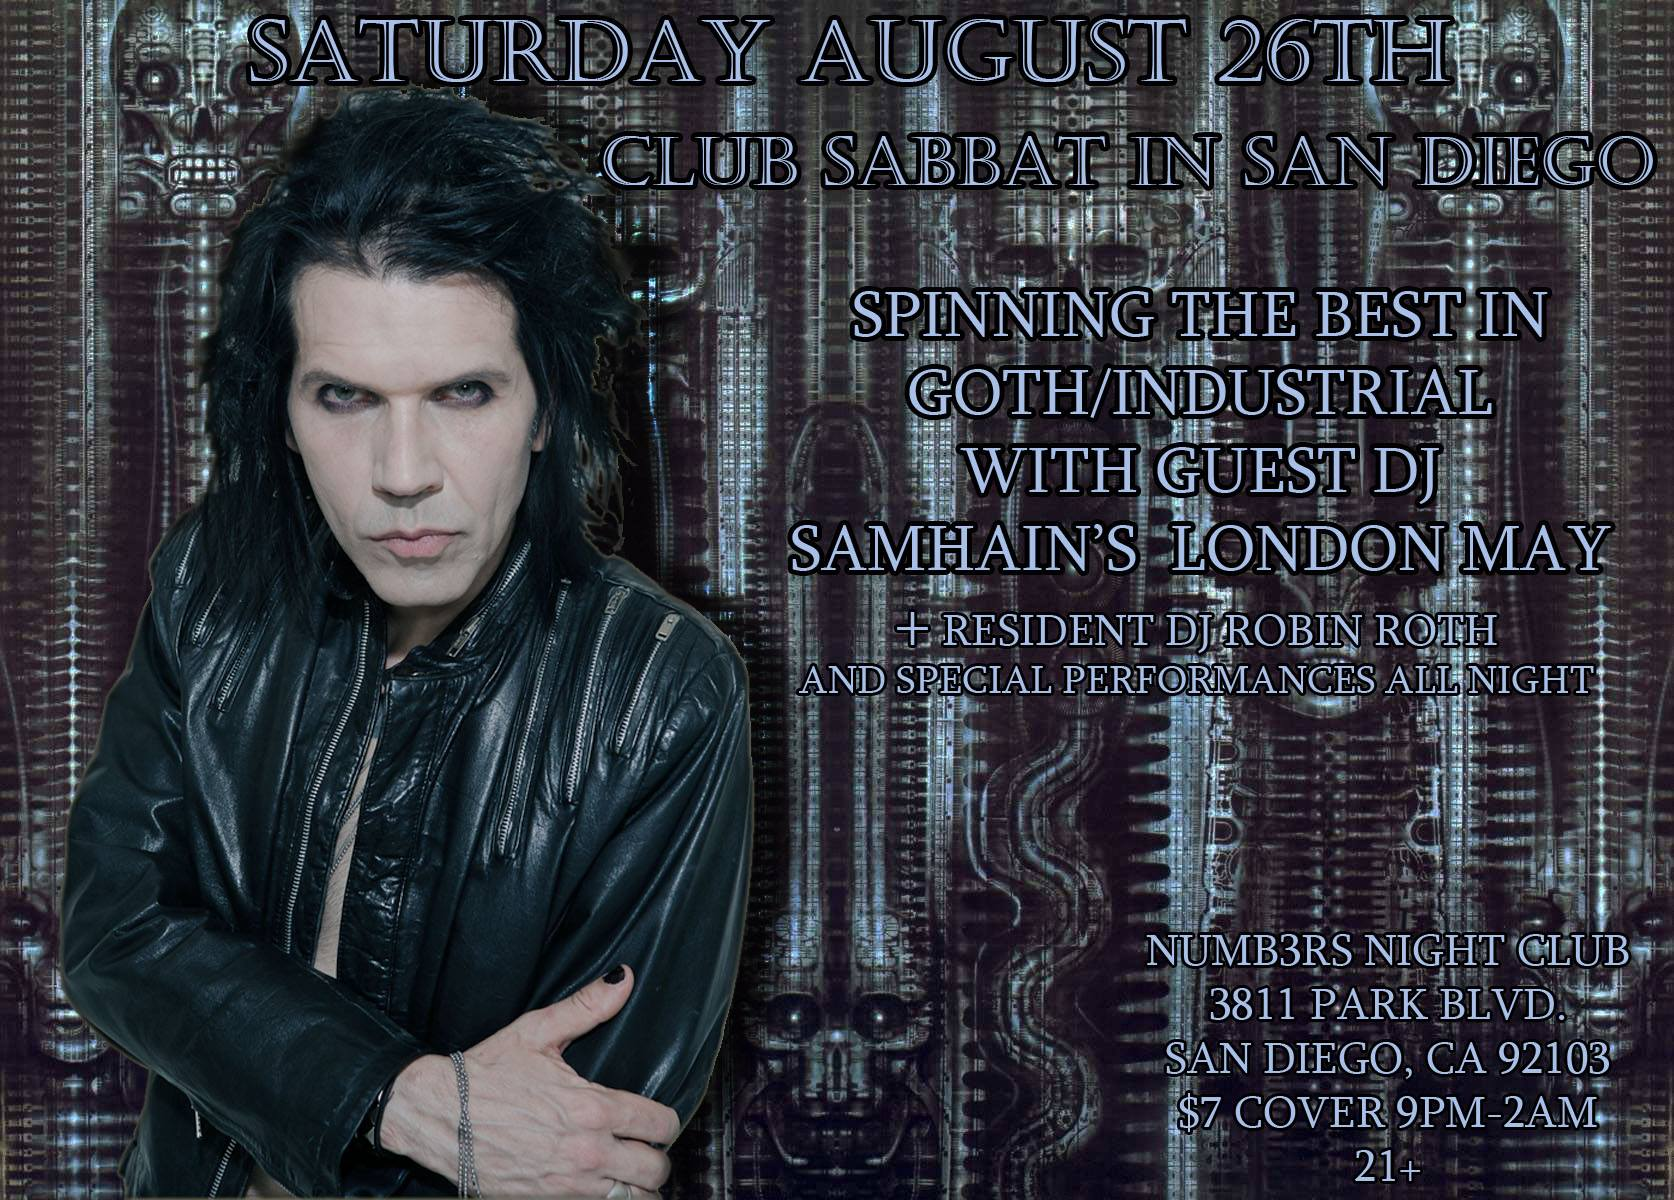 Calling all Night Creatures of San Diego! Come get your Goth on! On 8/26 I'm switching music gears to spin the best Goth/Industrial music at  Club Sabbat  along w/resident DJ  Robin Roth . Join us for a wicked night of dancing & special performances.